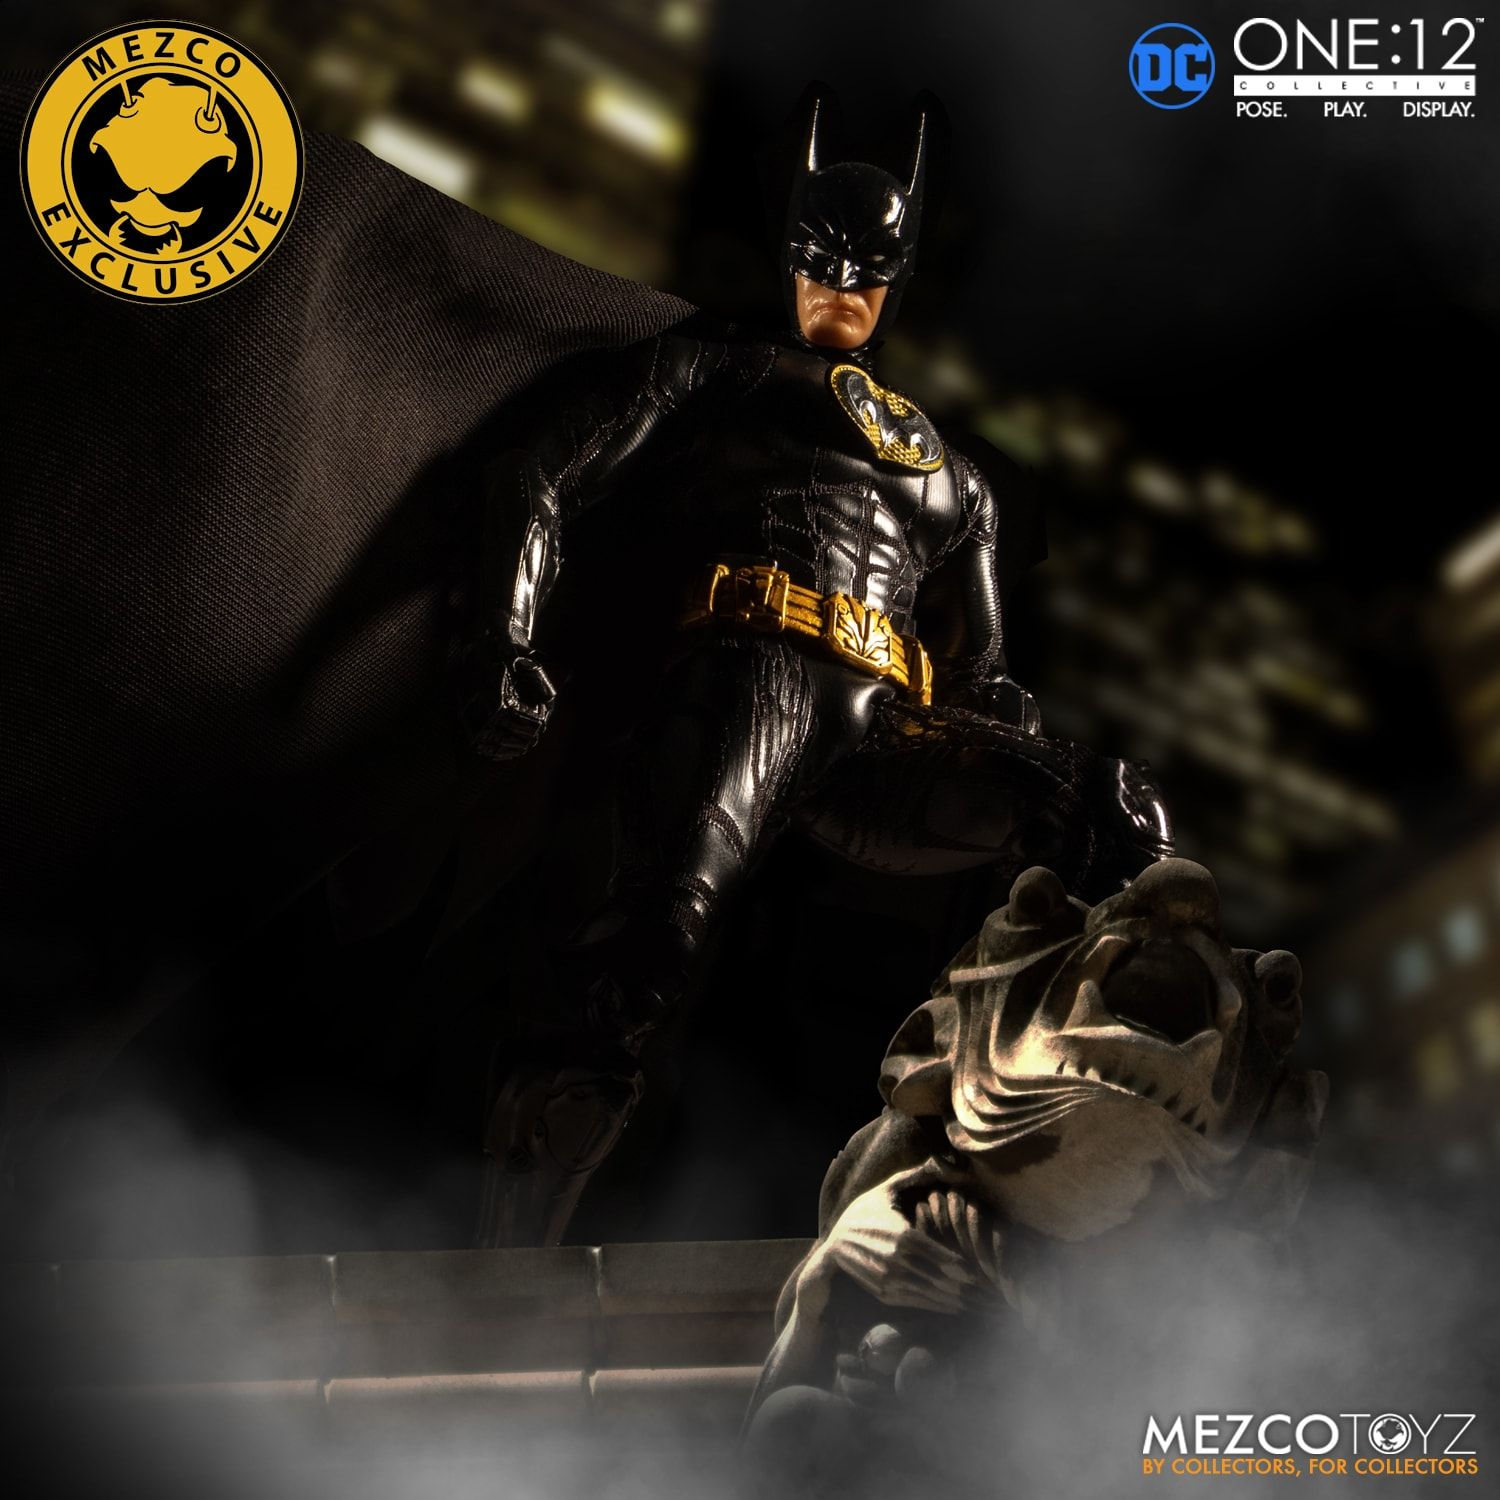 MEZCO ONE:12 COLLECTIVE Exclusive Batman Sovereign Knight Onyx Edition